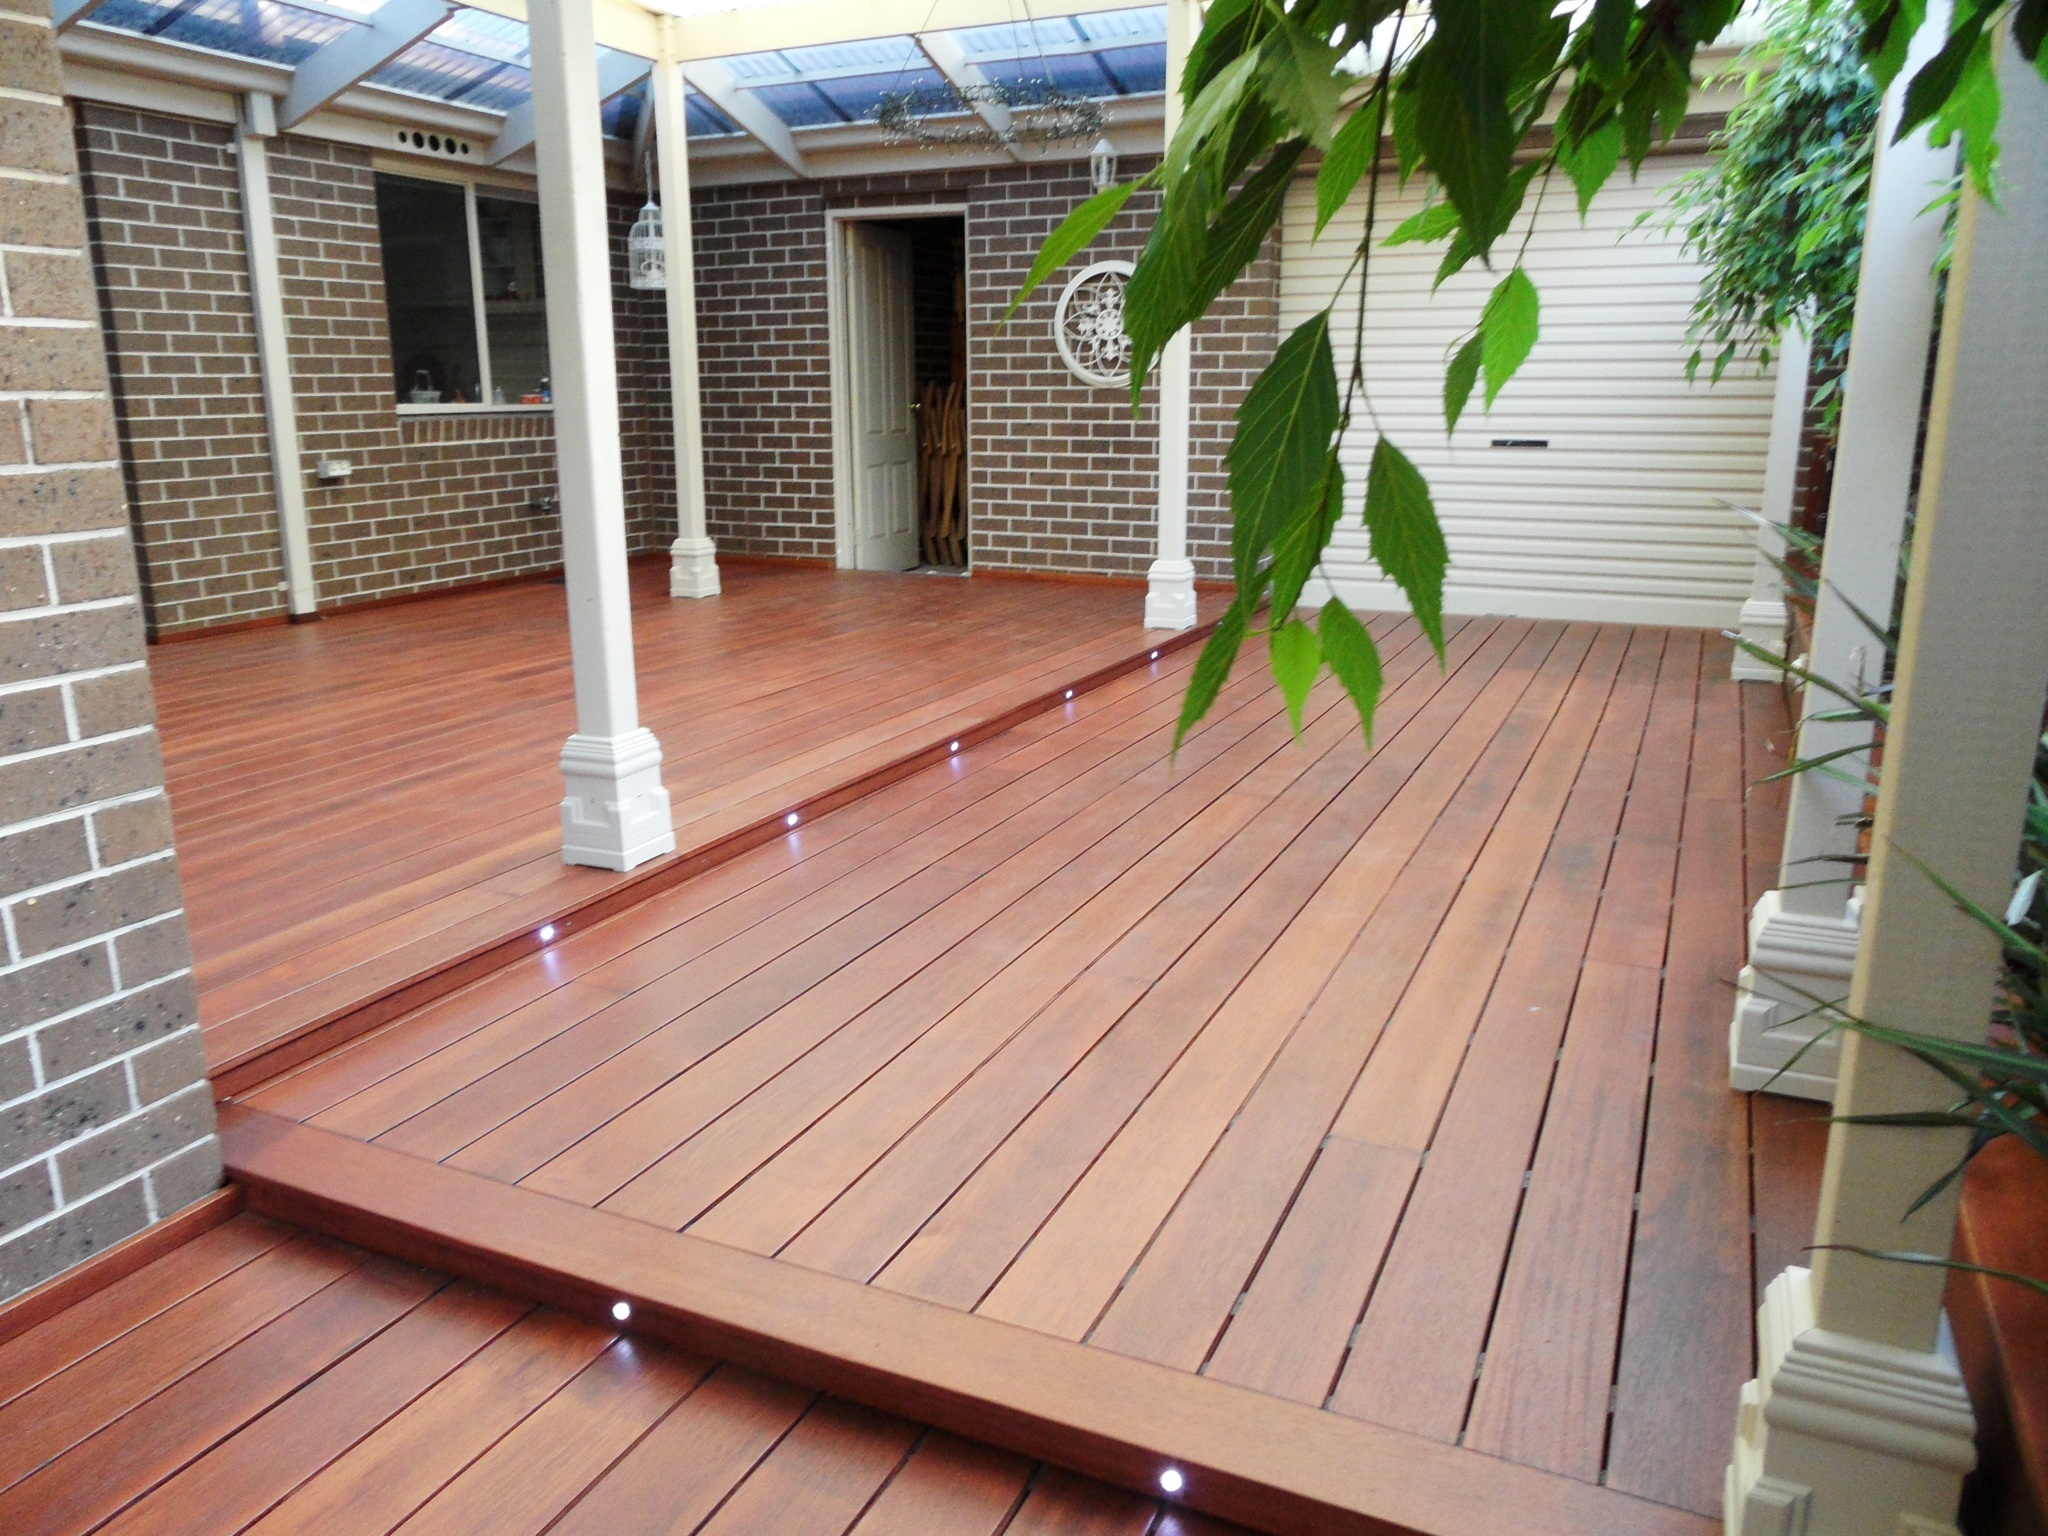 Roof-decking